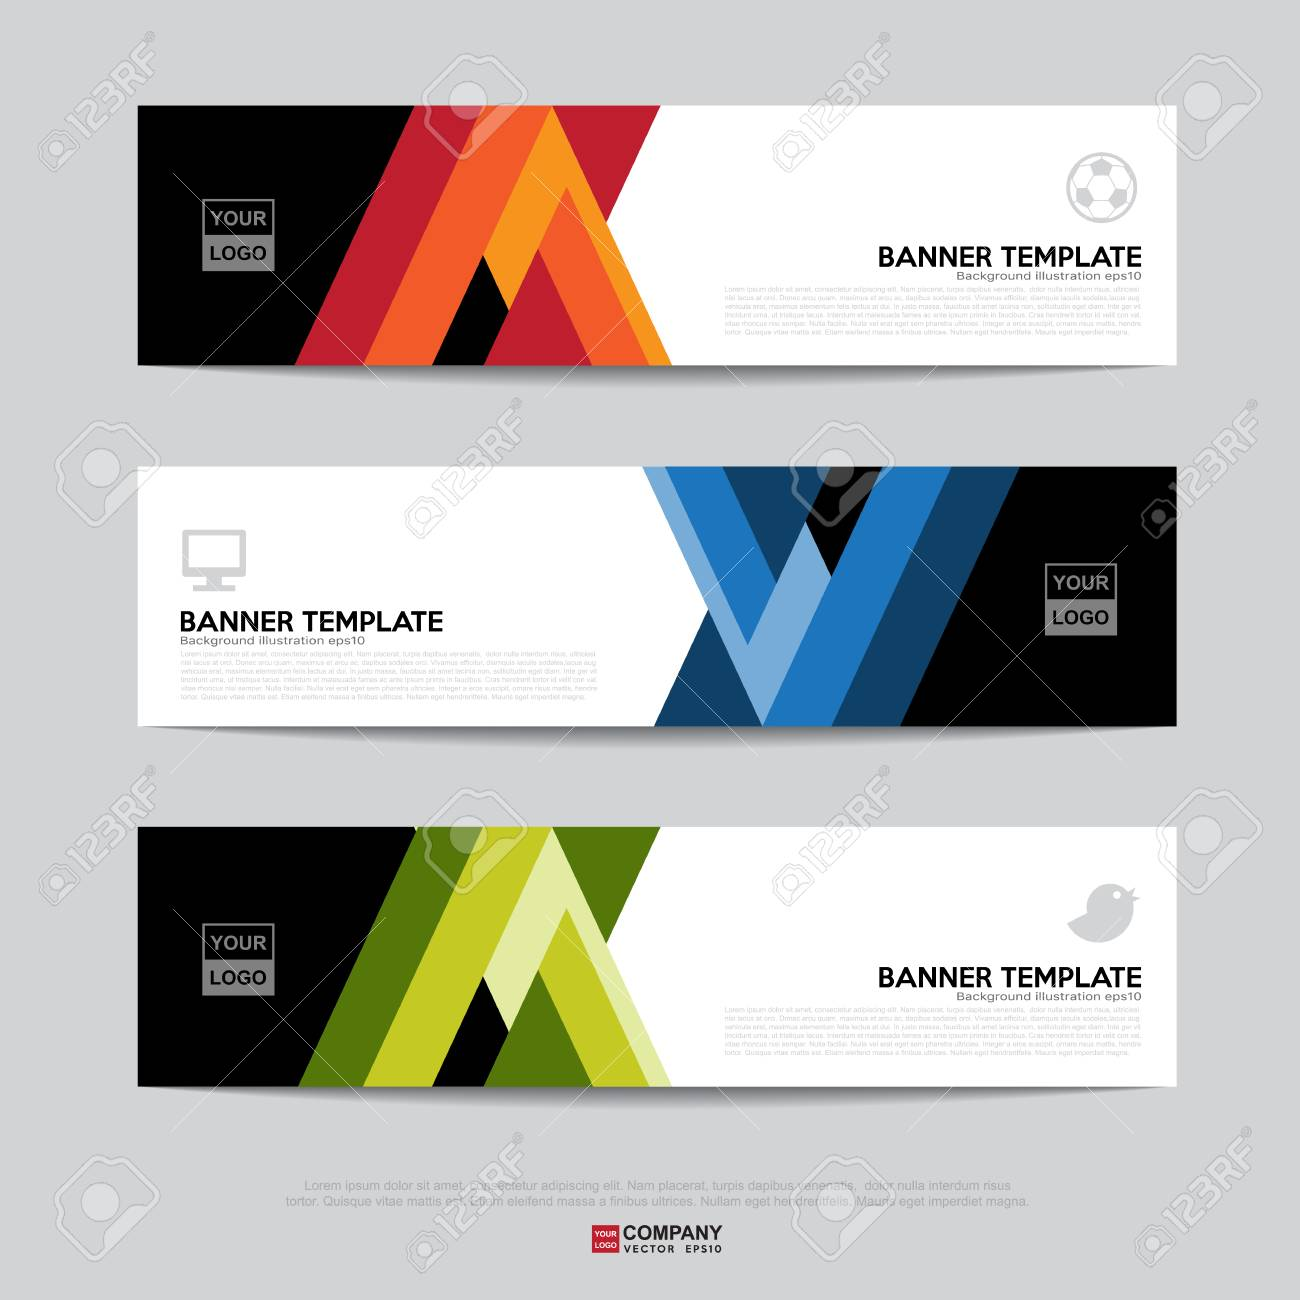 Design of flyers banners brochures and cards templatebanner design of flyers banners brochures and cards templatebanner design for business presentation accmission Gallery